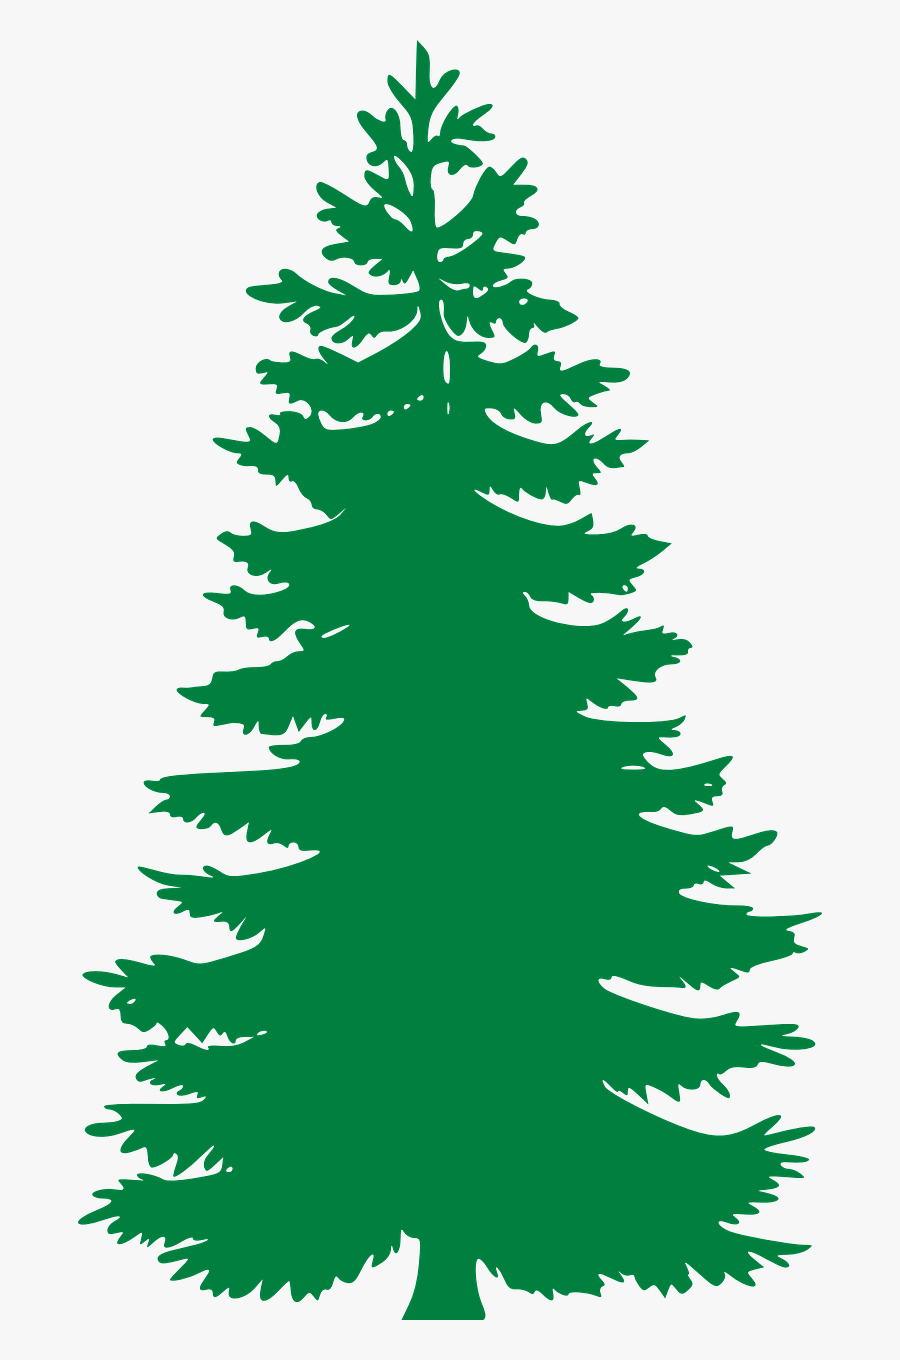 Free Image On Pixabay - Black And White Pine Tree, Transparent Clipart